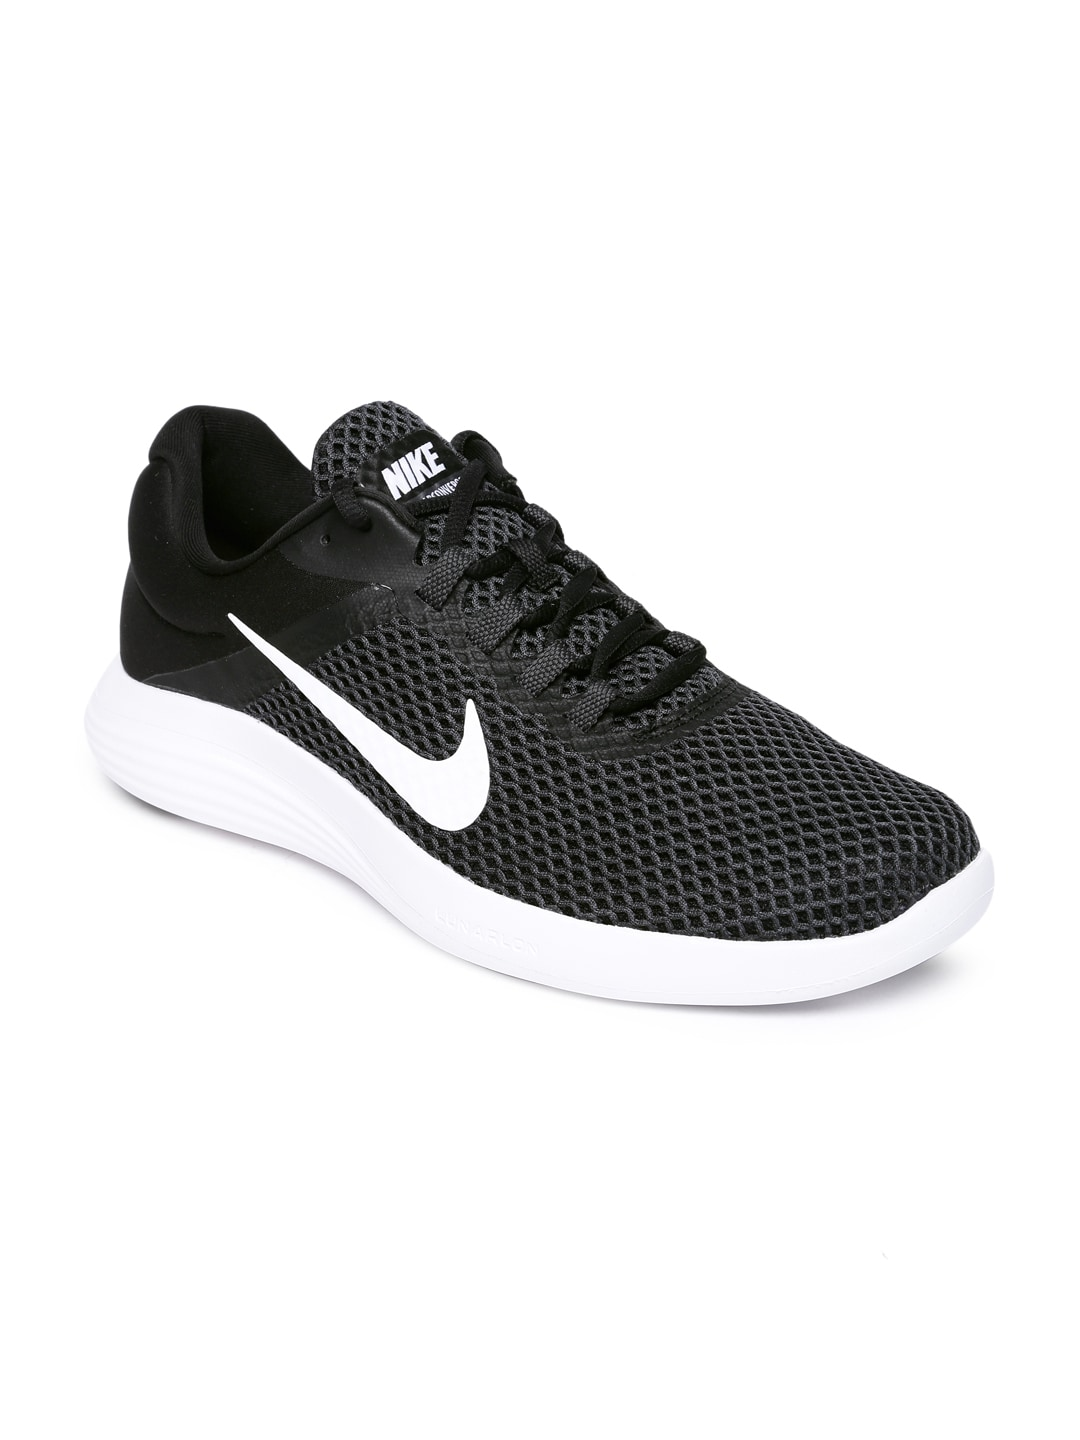 buy popular 5f367 867ad Nike Running Shoes - Buy Nike Running Shoes Online   Myntra